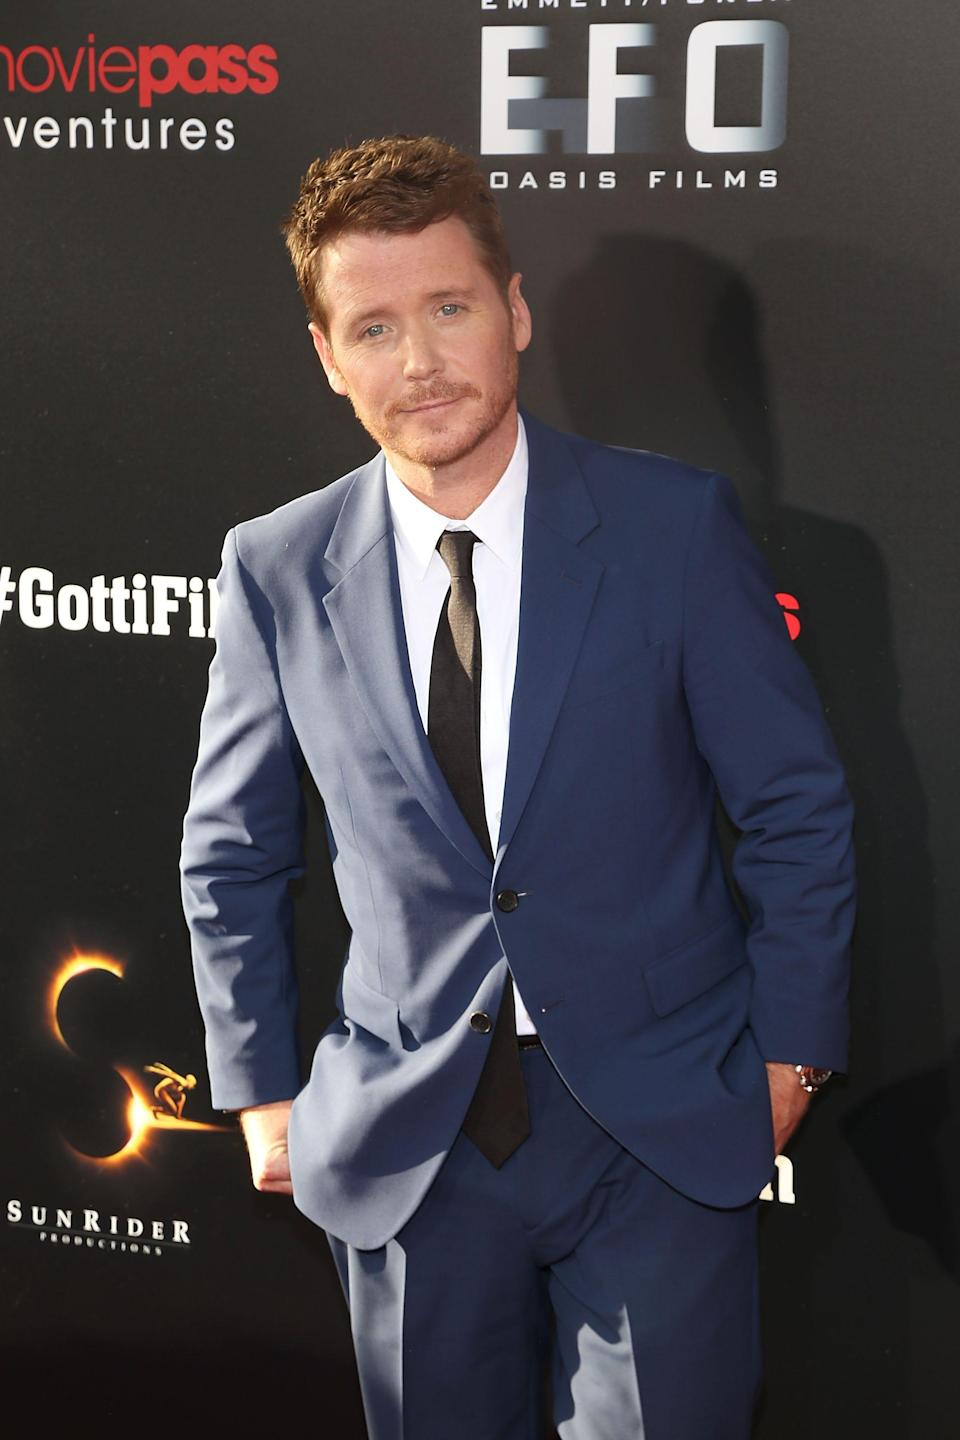 """Kevin Connolly attends the New York Premiere of """"Gotti"""" at SVA Theater on June 14, 2018 in New York City."""